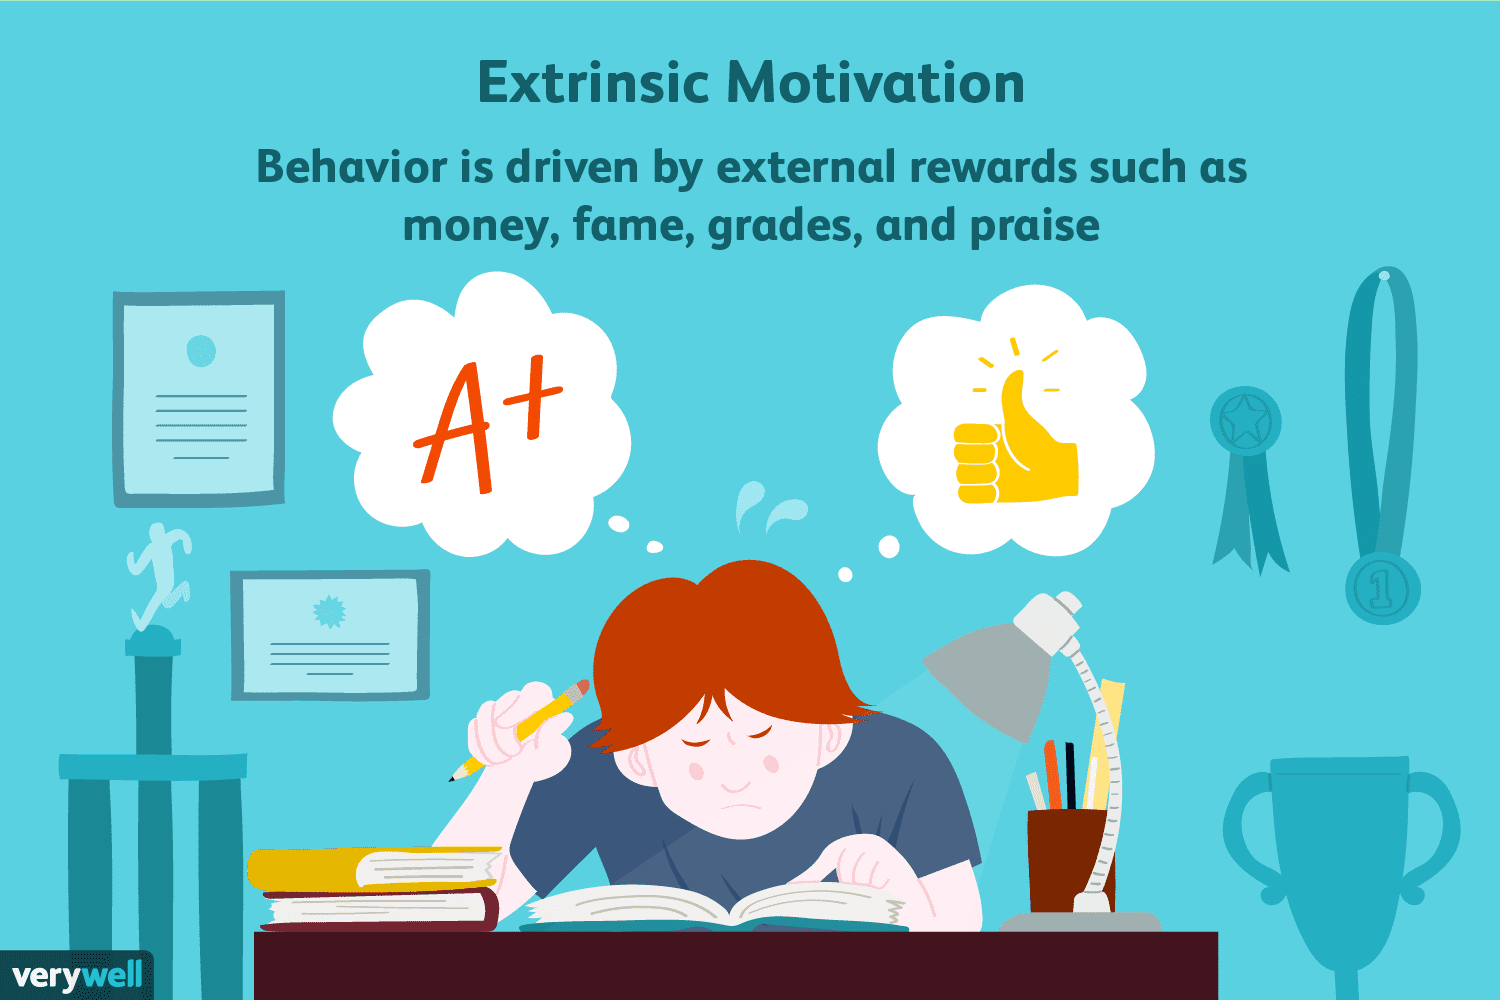 is it true that extrinsic motivation Finding fun, excitement, interest, pleasure, and satisfaction-all forms of intrinsic motivation-in the process of contesting will help guard against decompetition.